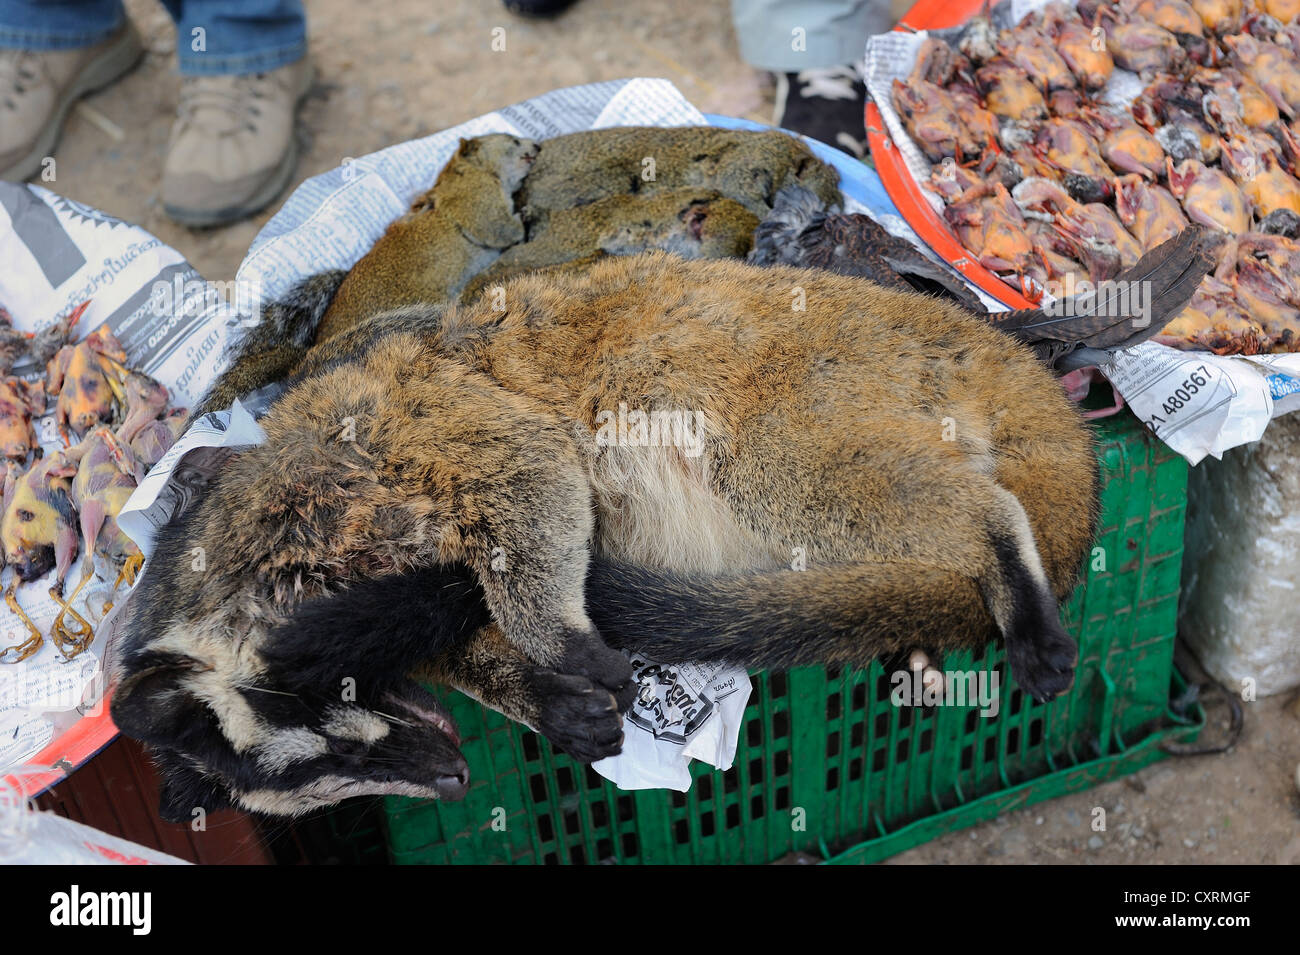 Chinese ferret-badger (Melogale moschata), rodents and songbirds are sold at the market as meat, town of Phansavan, - Stock Image